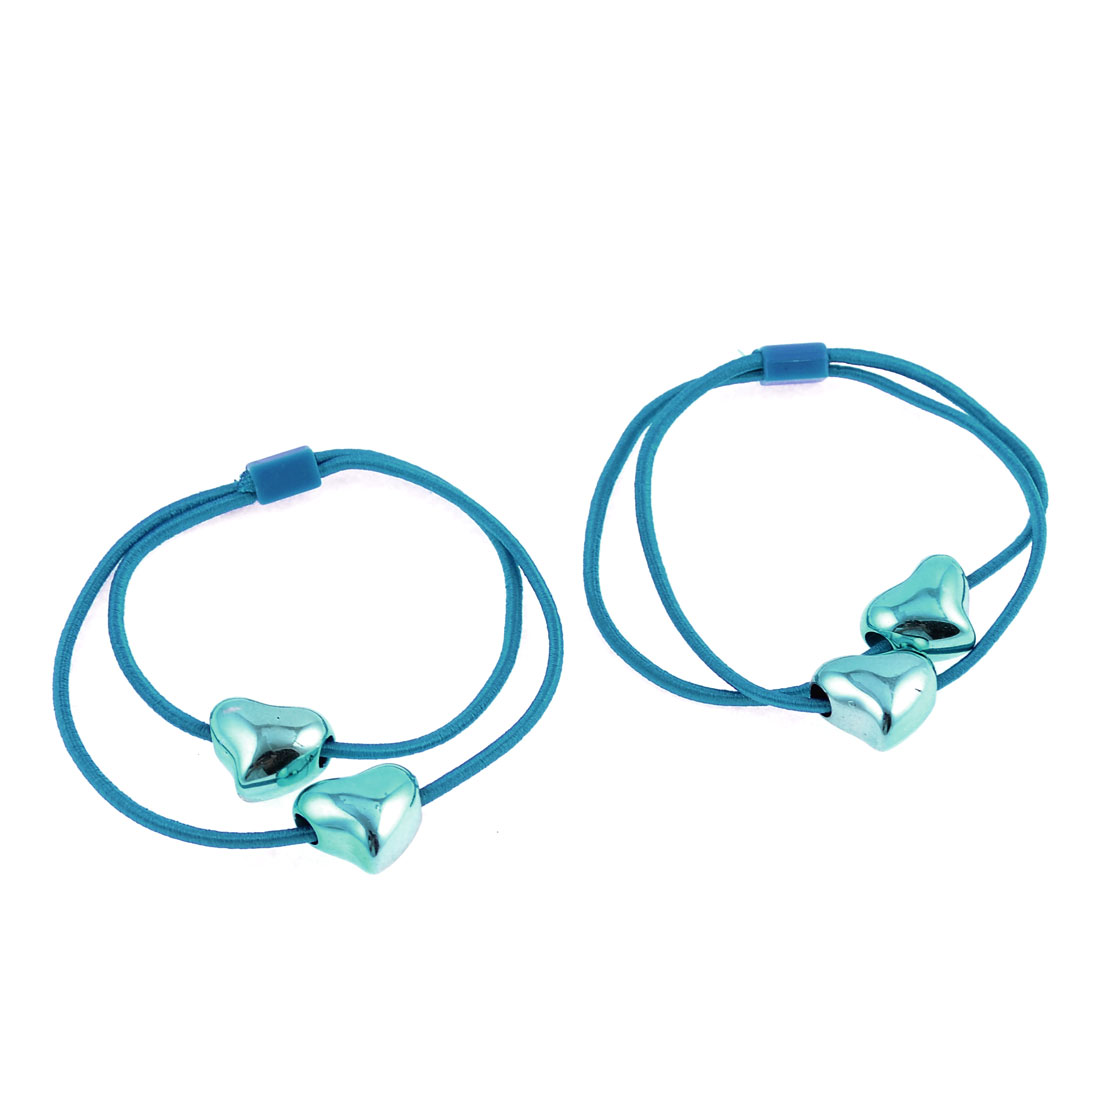 Turquoise Bright Heart Bead Accent Stretch Hair Tie Ponytail Holder Pair